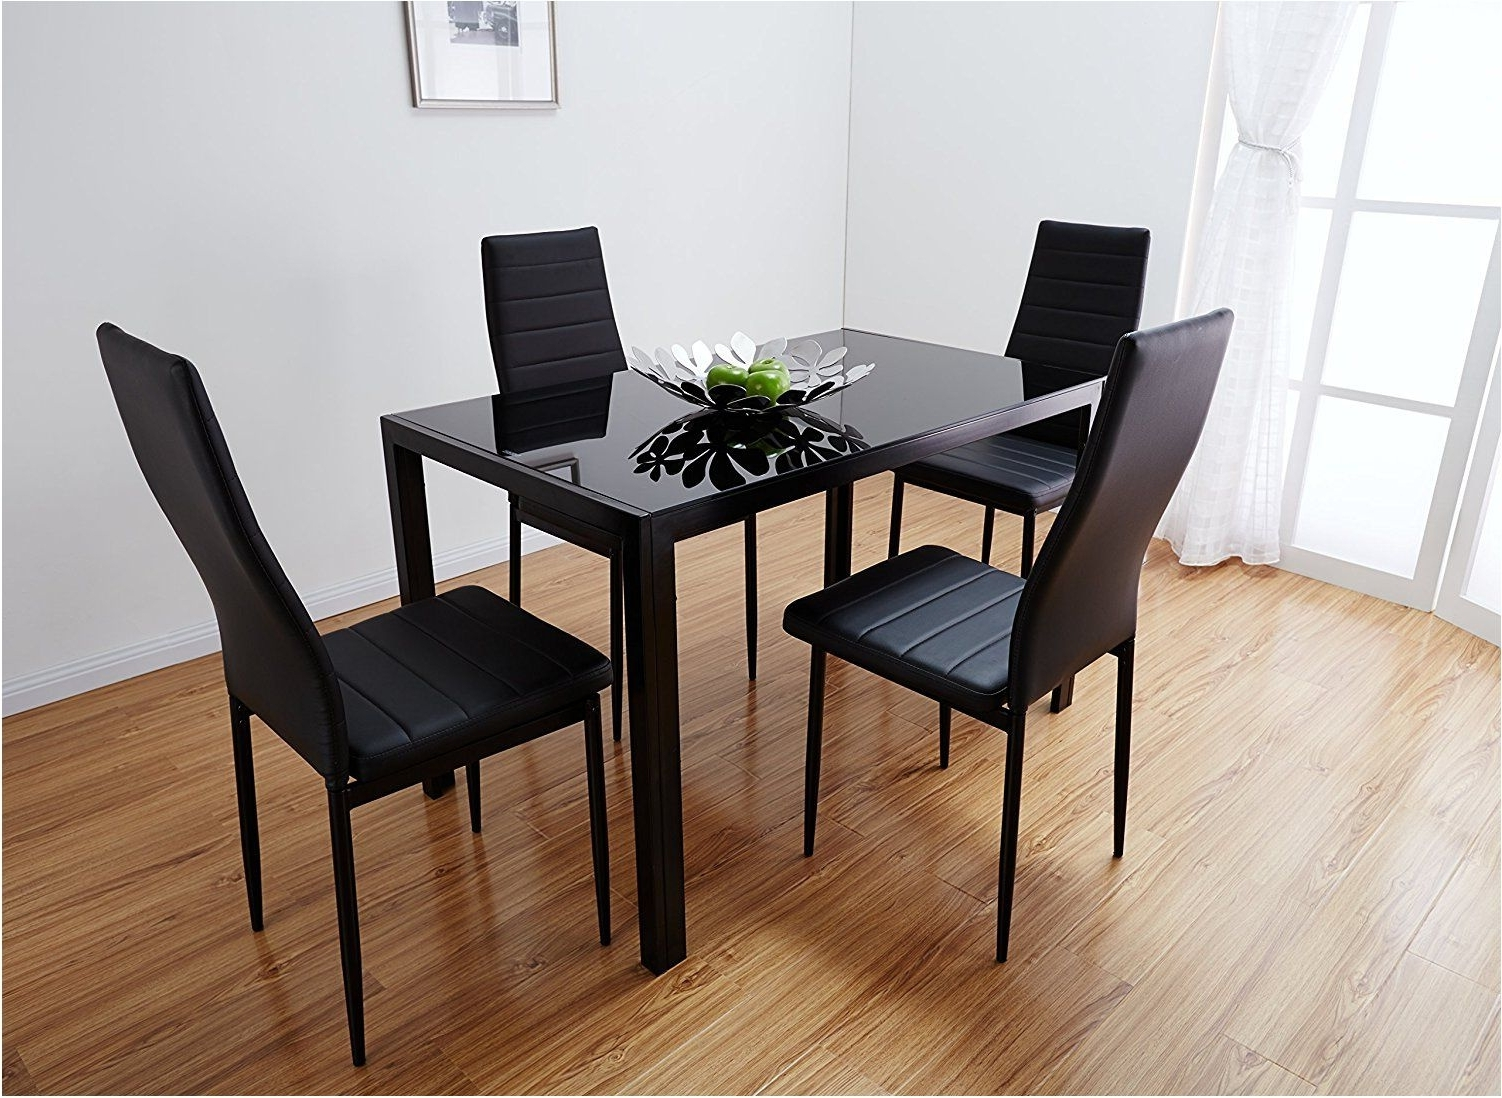 Newest 6 Seater Glass Dining Table Sets Inside Nice Black Glass Dining Table Set With 4 Faux Leather Chairs Brand (View 21 of 25)